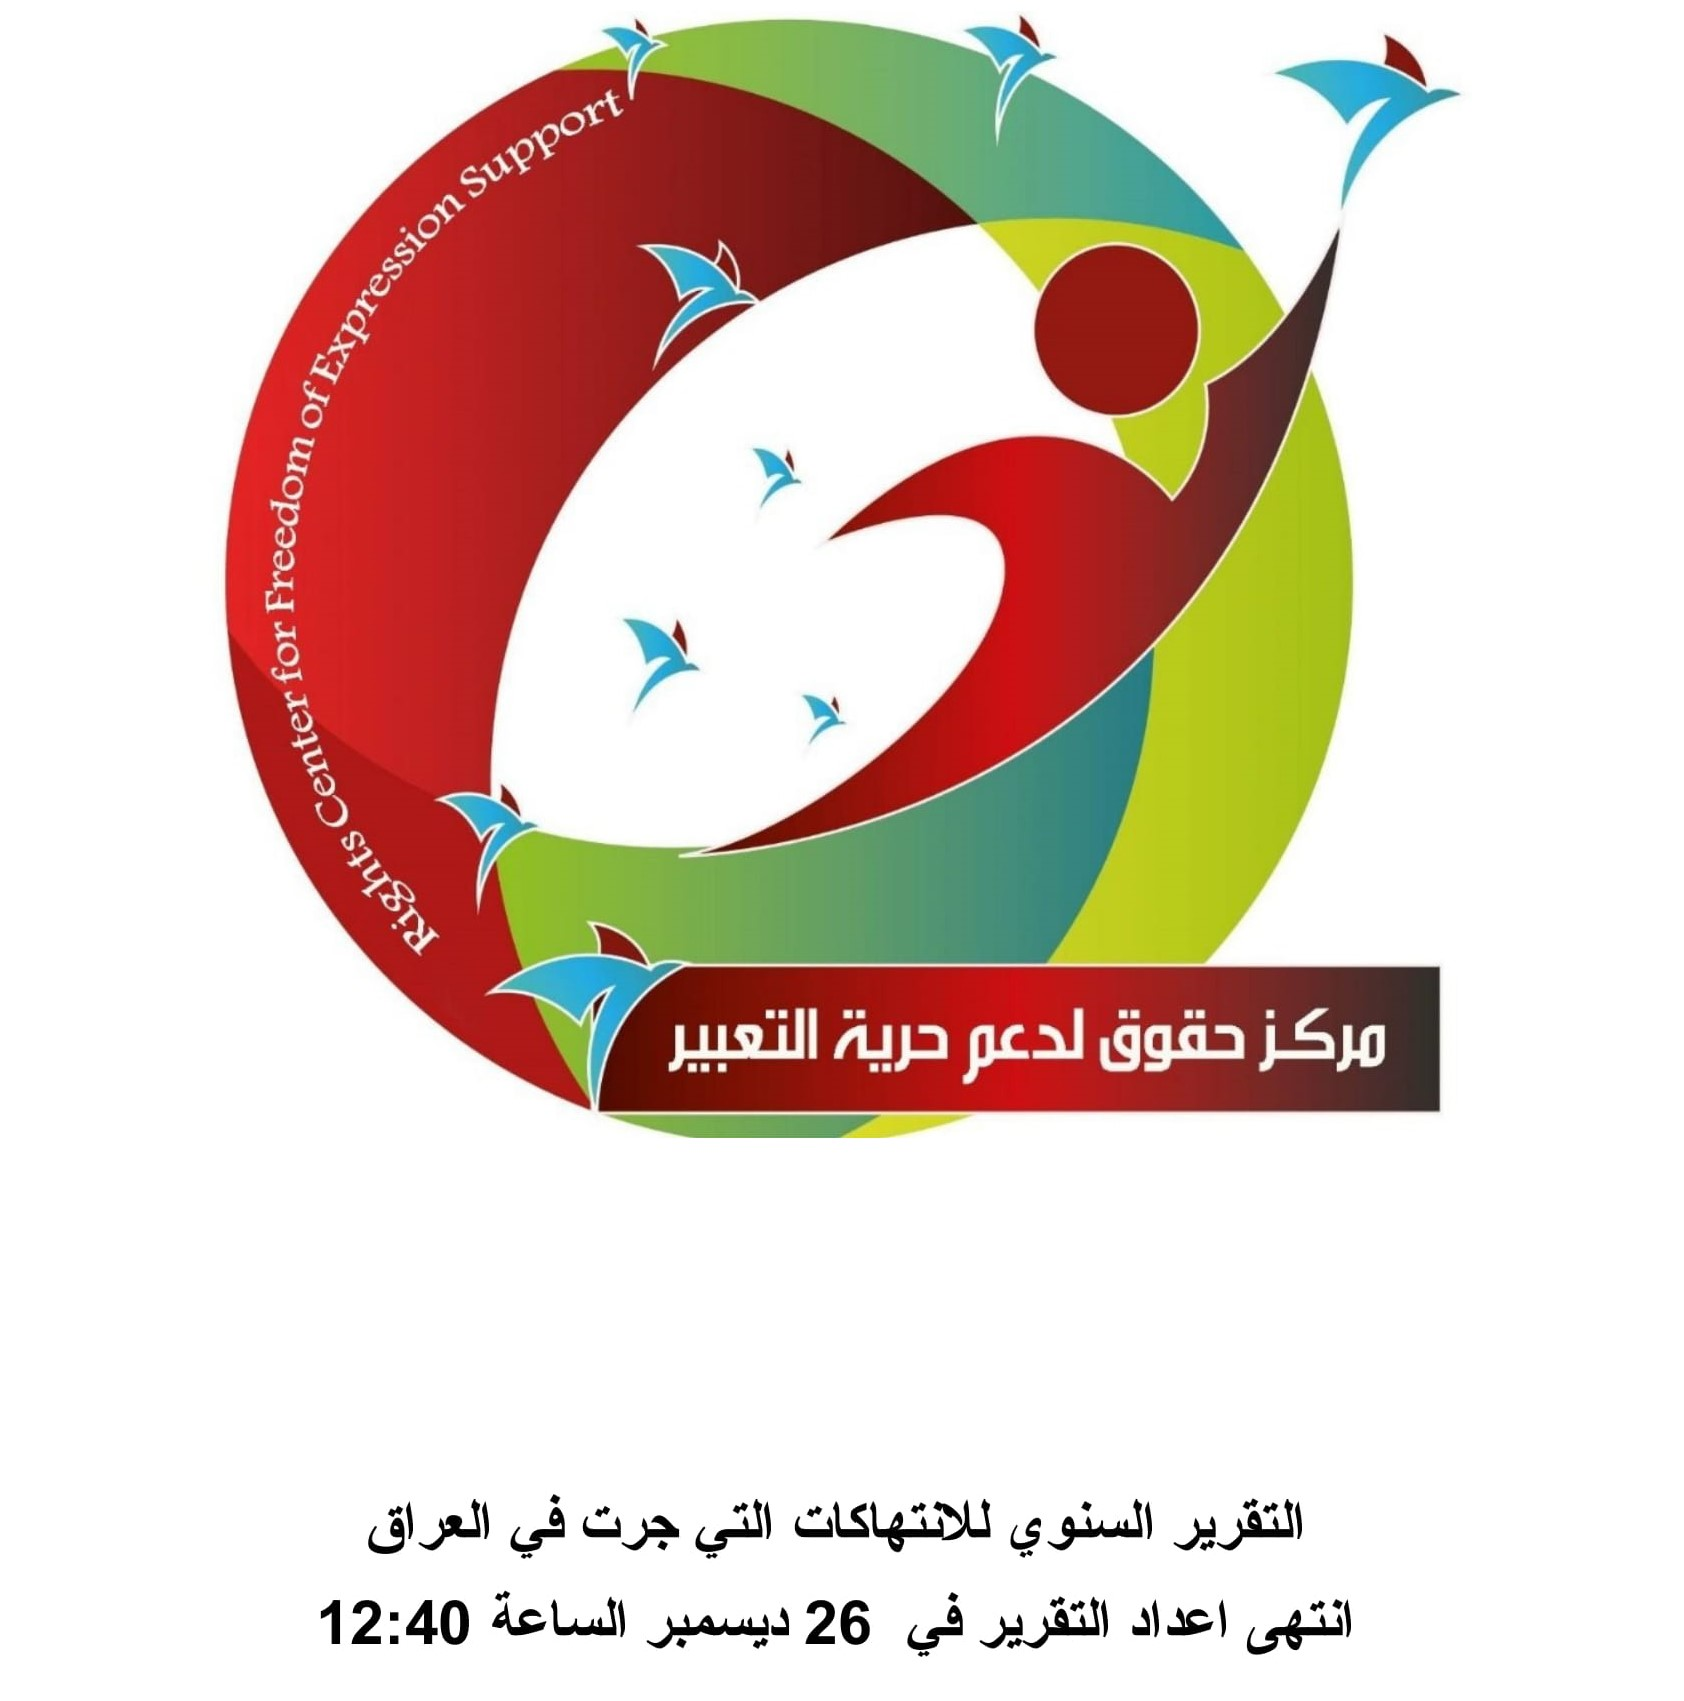 The annual report of violations that took place in Iraq in 2020